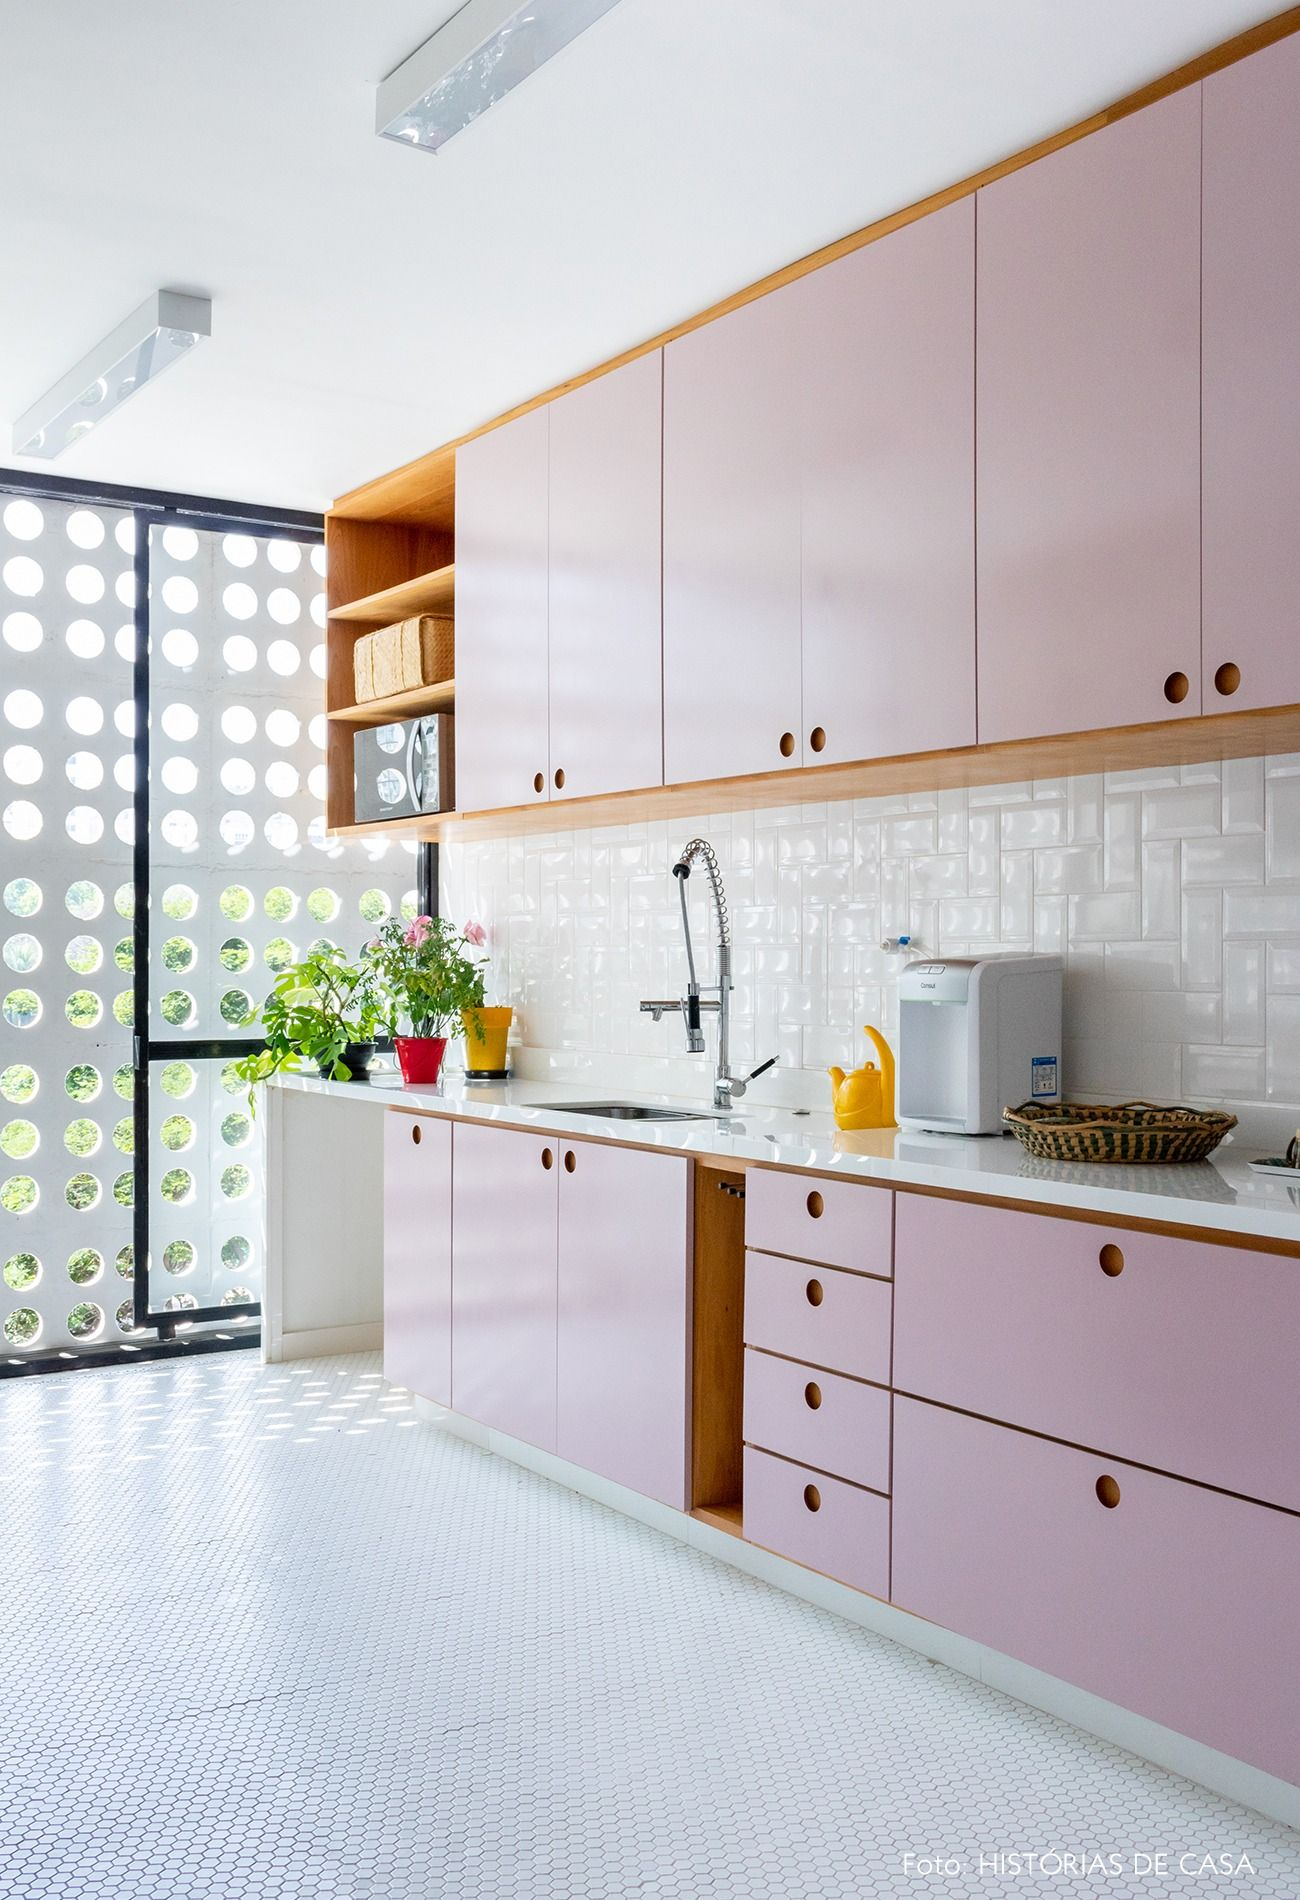 kitchen, white floor tiles, white backsplash, pink top cabinet, pink bottom cabinet, wooden shelves, white counter top